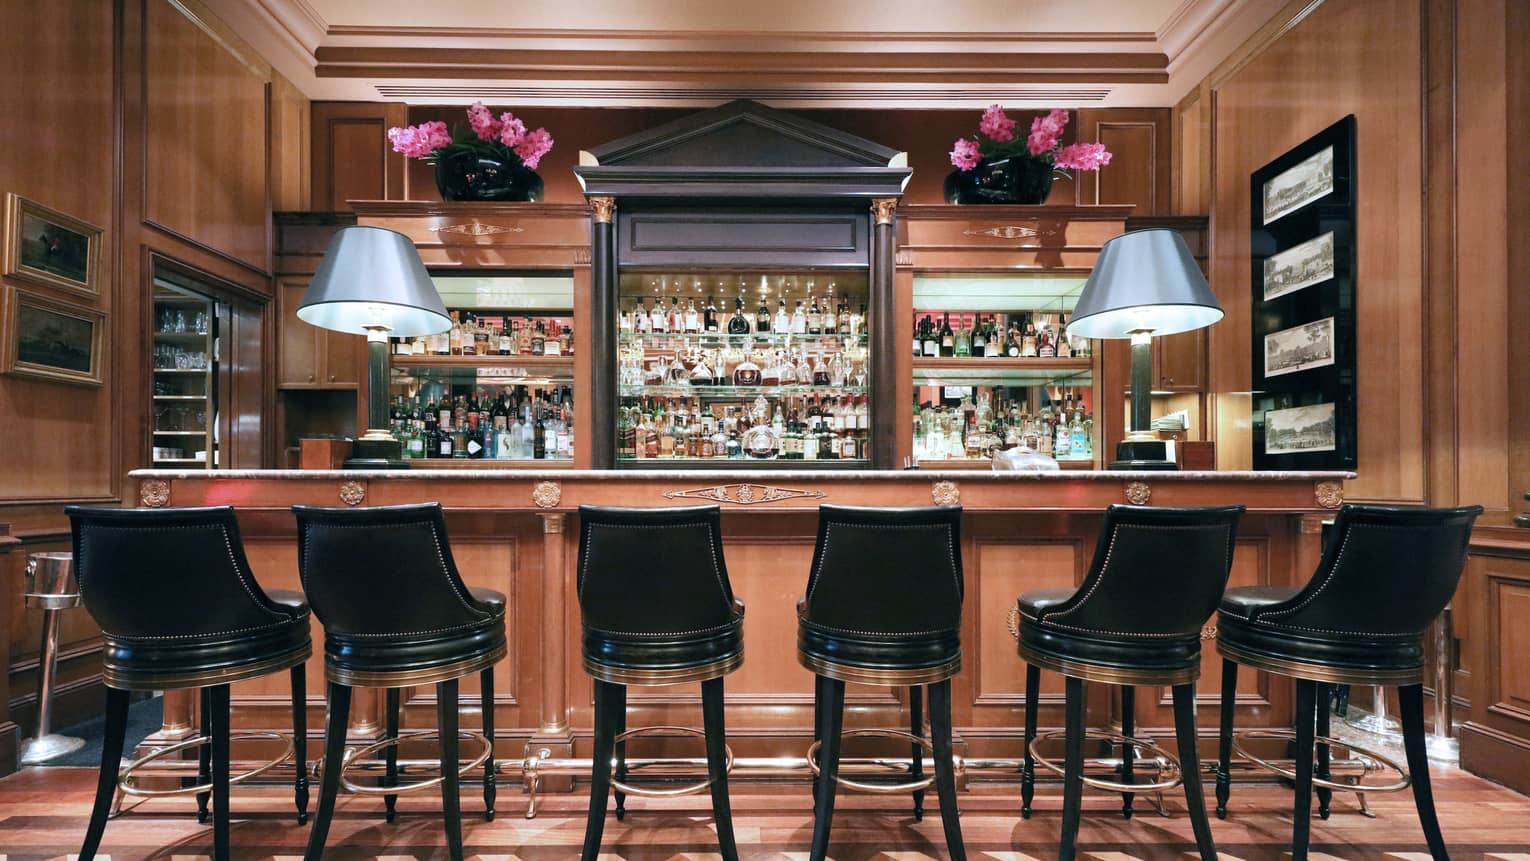 Black bar stools along Le Bar rail, liquor display, purple flowers